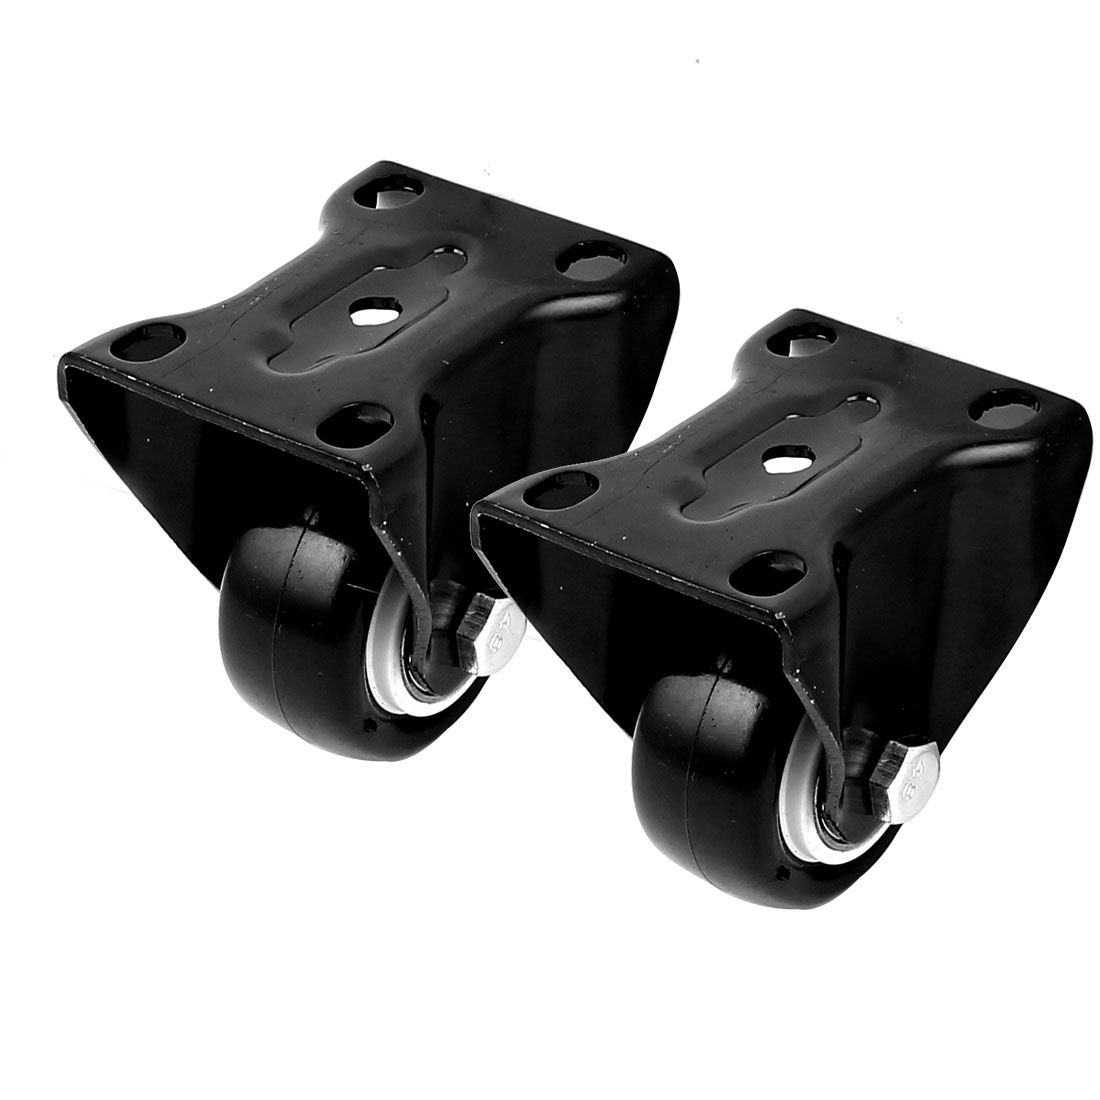 "Trolley 1.5"" Single Roller Top Plate Swivel Caster Polyurethane Wheel Black 2pcs"